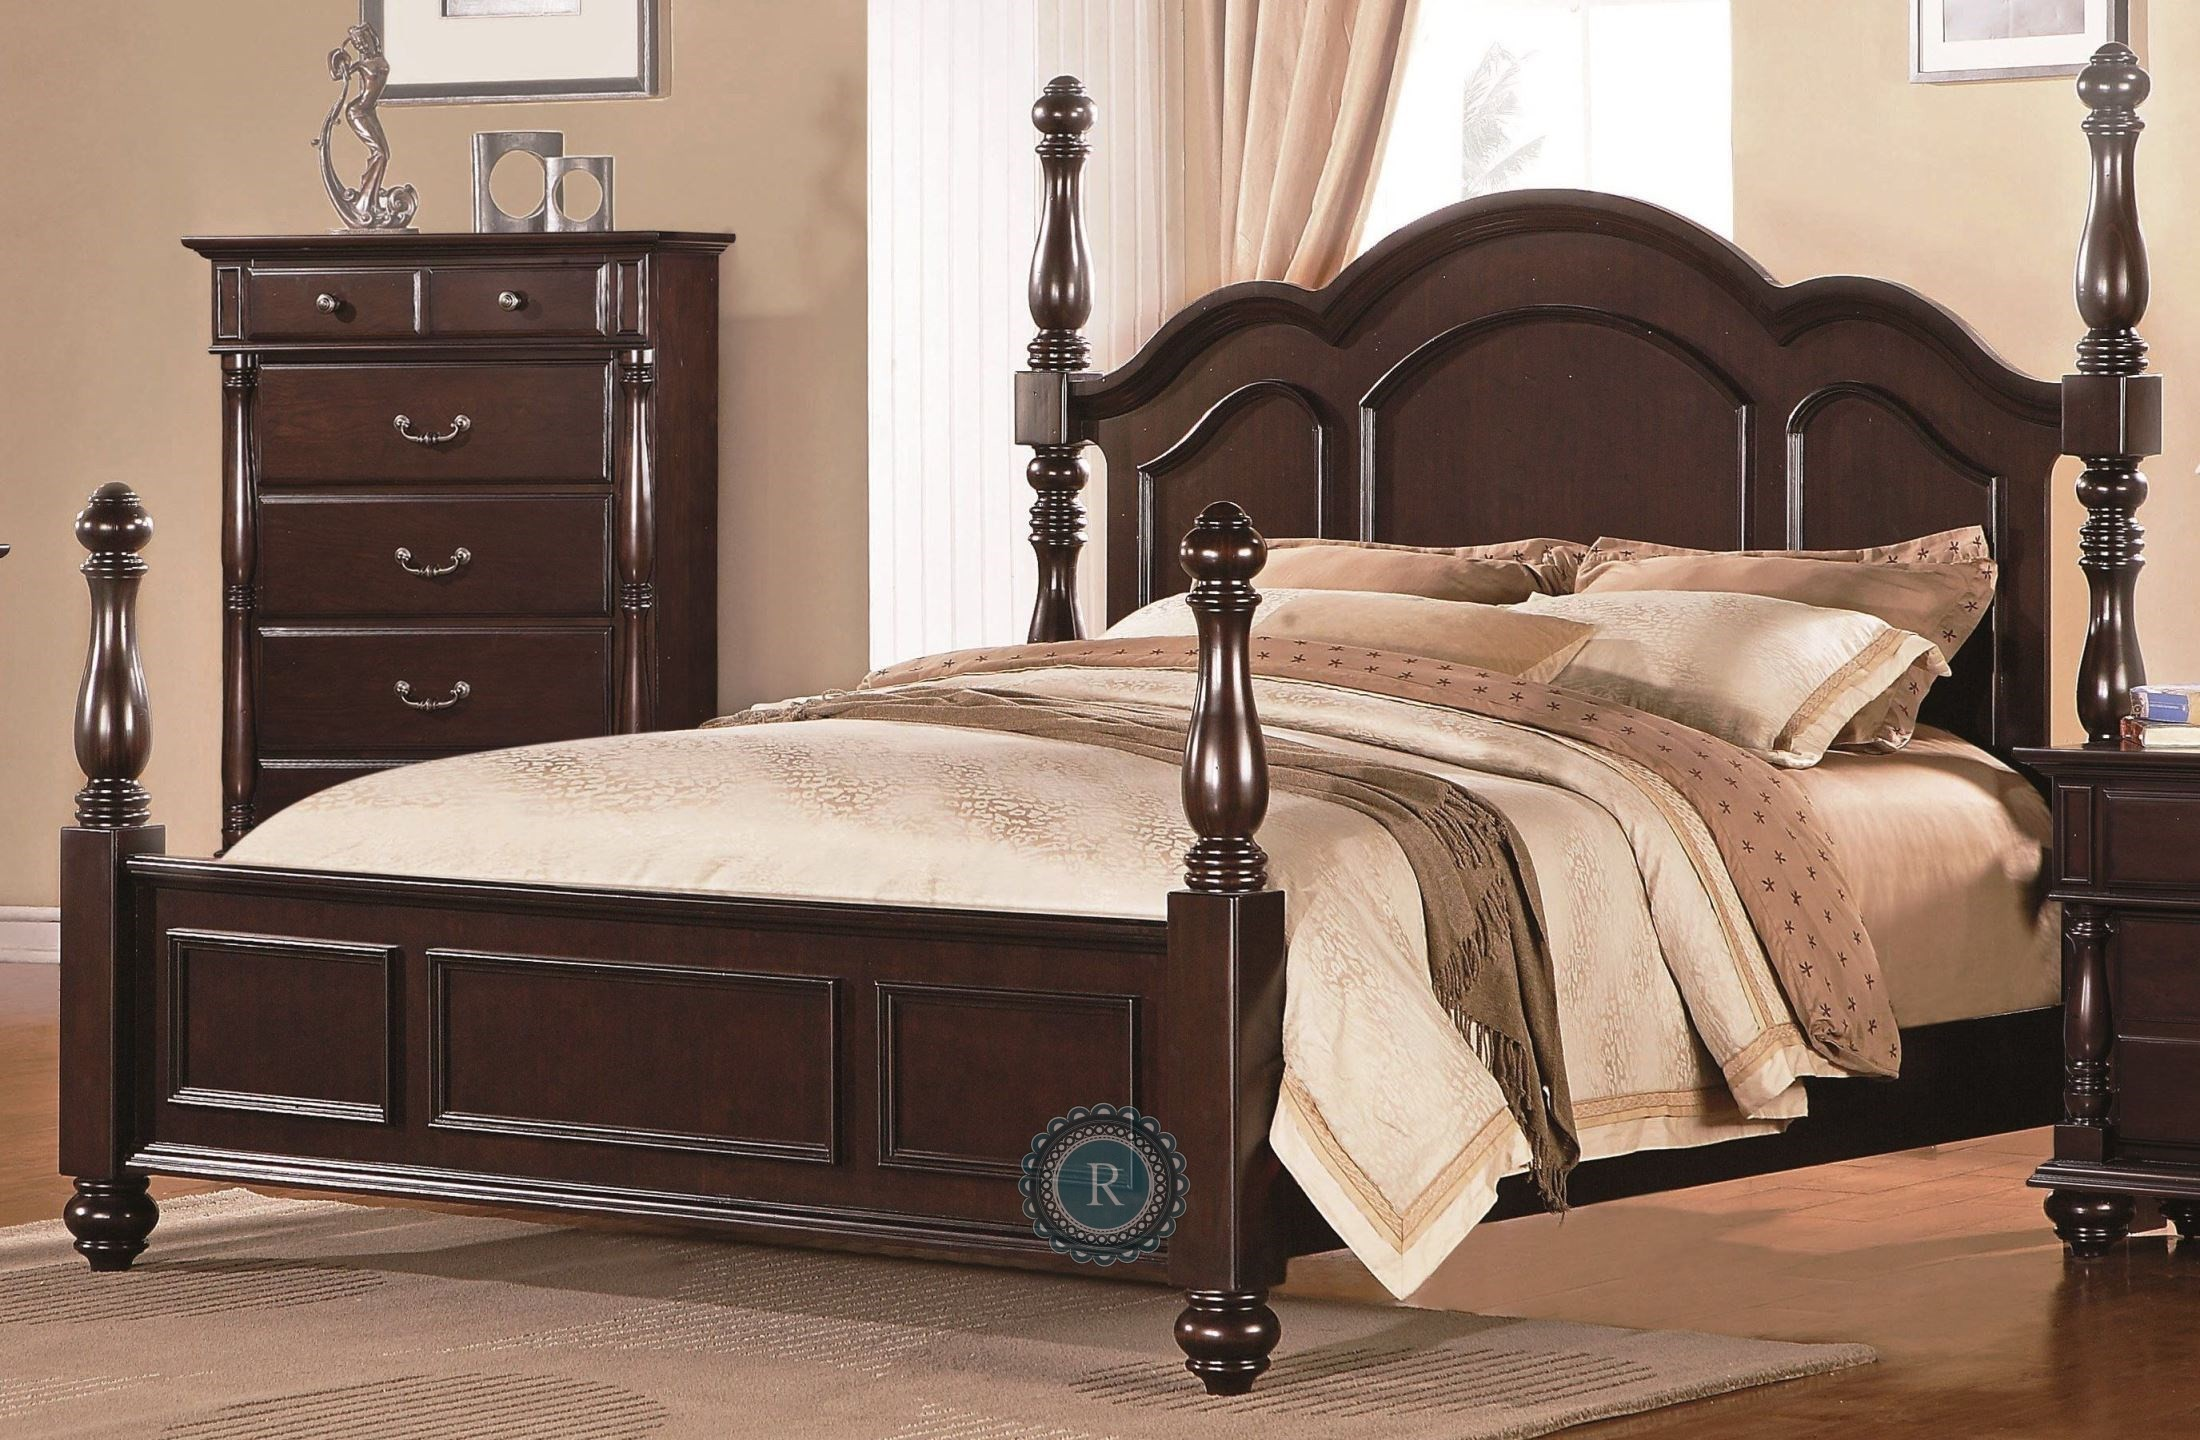 Townsford Queen Poster Bed From Homelegance 43830